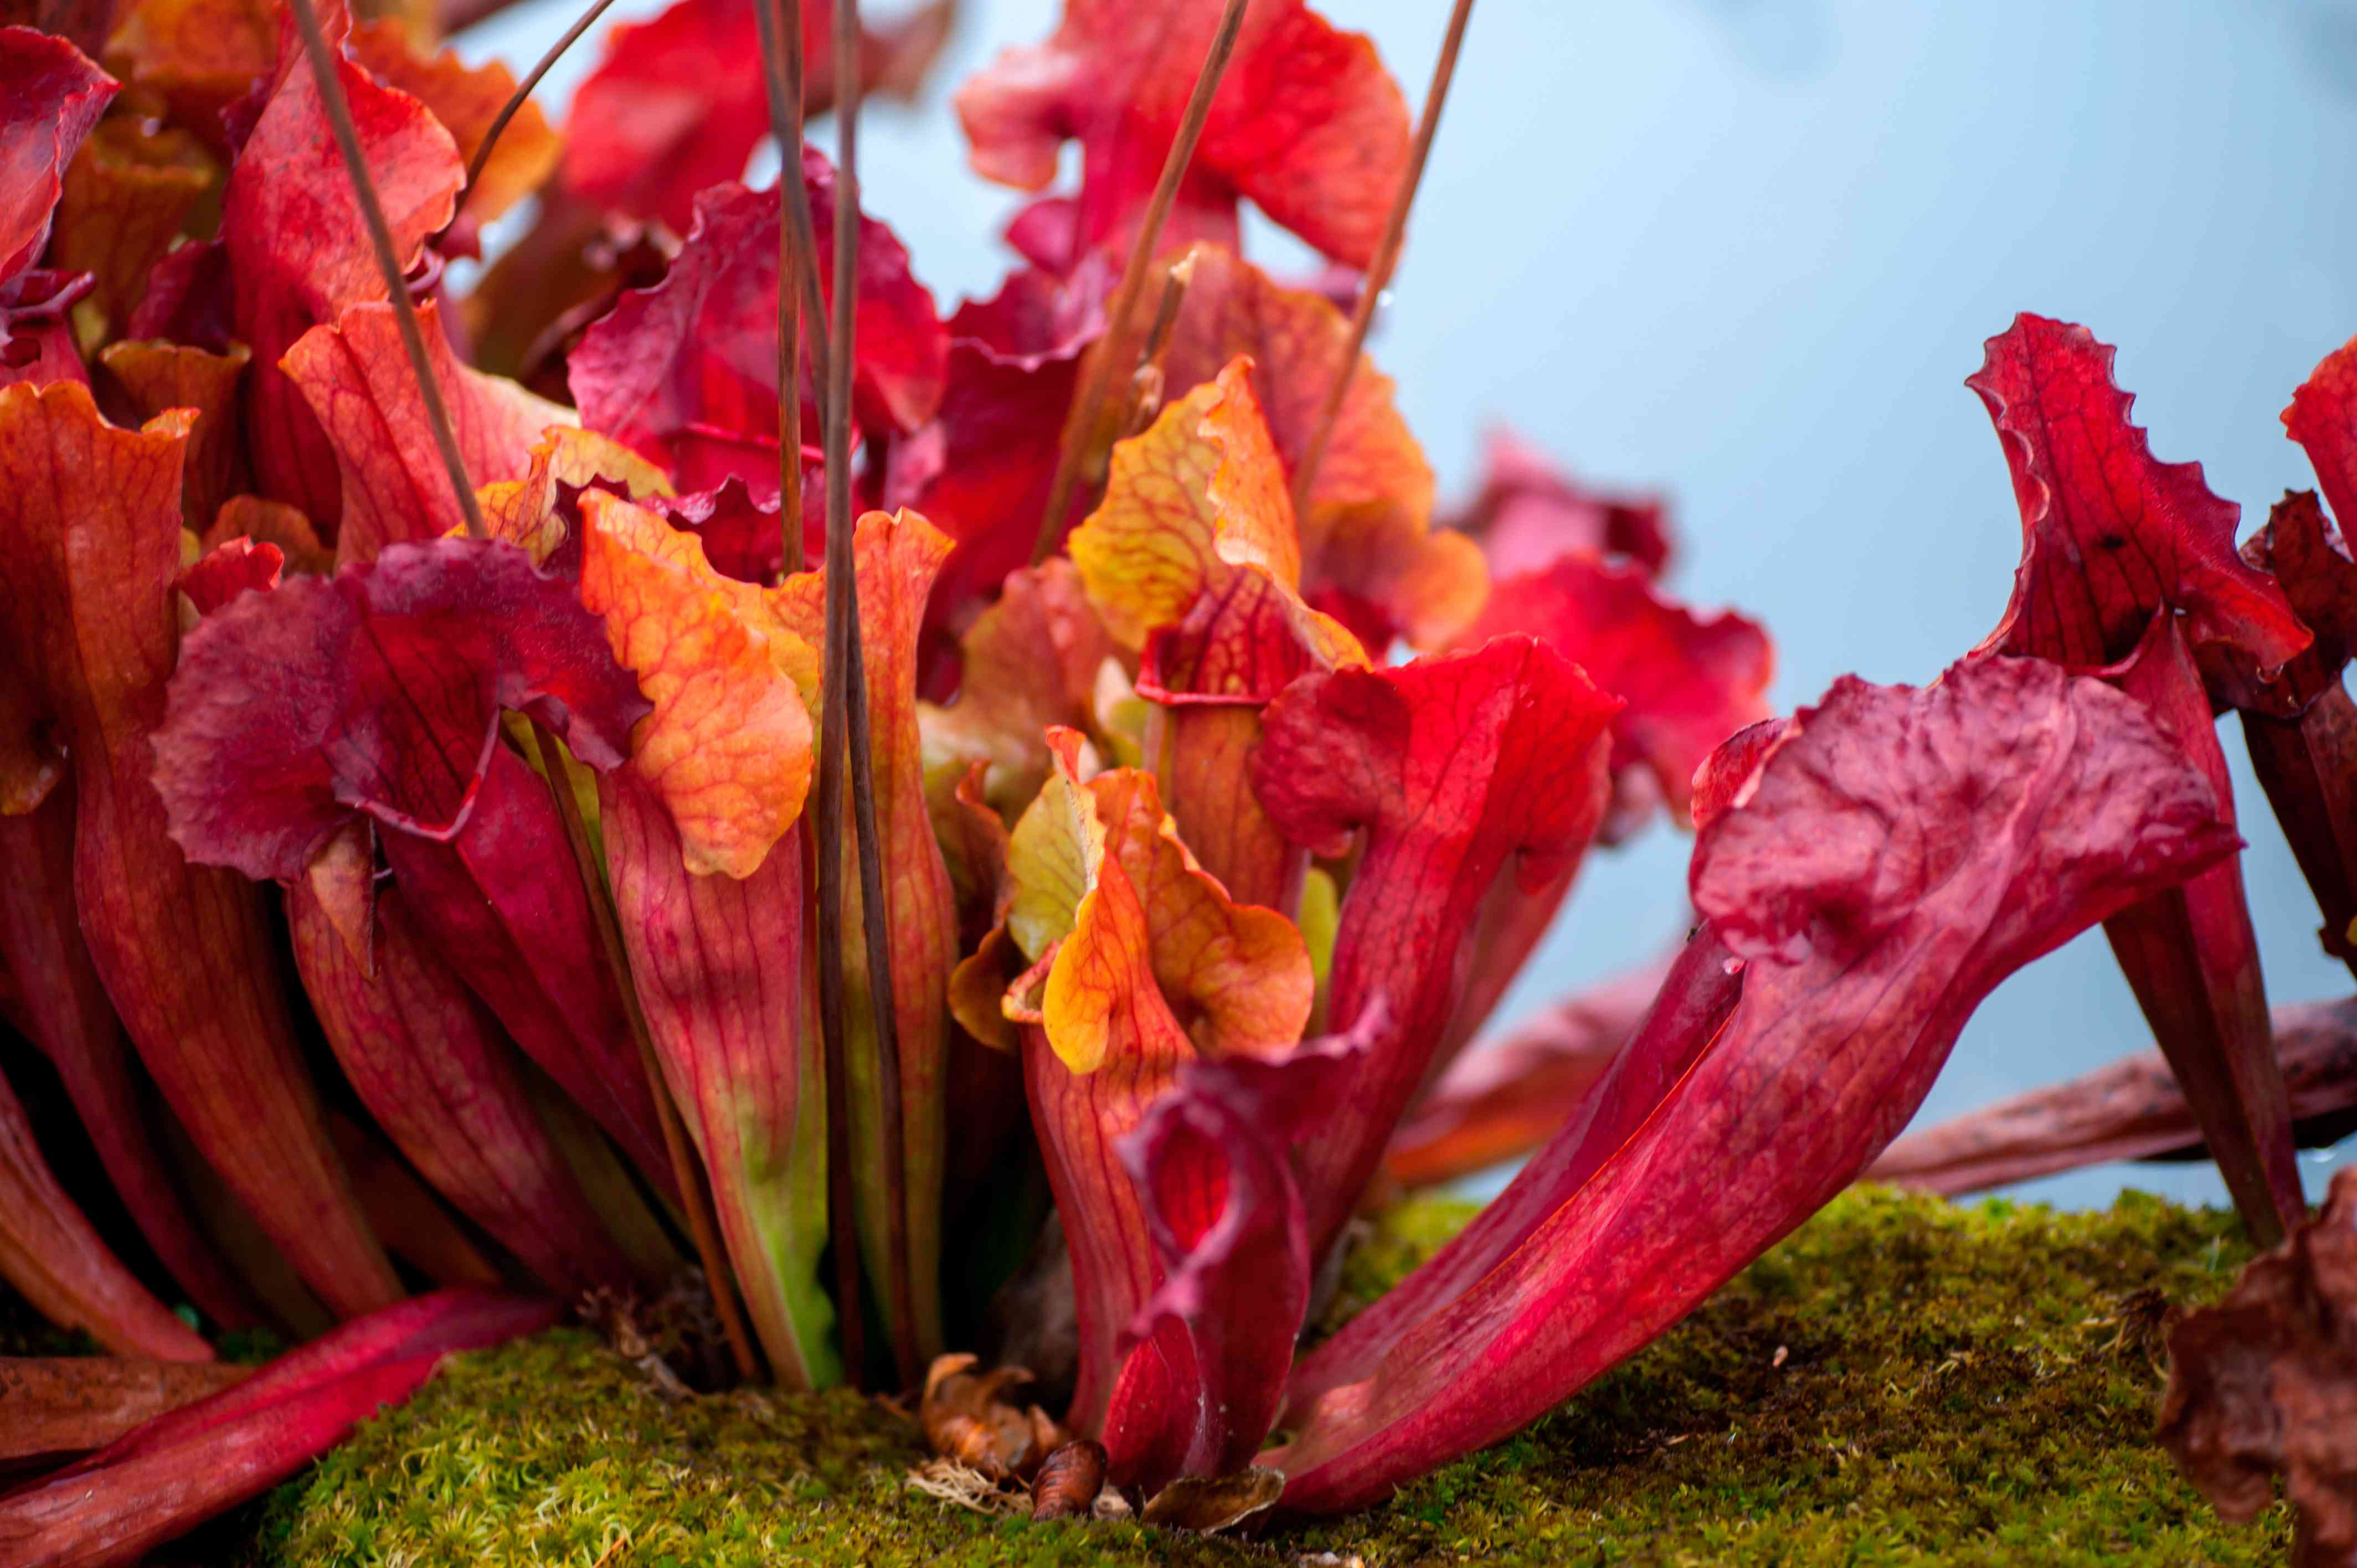 Purple pitcher plant with red and orange container-like leaves closeup